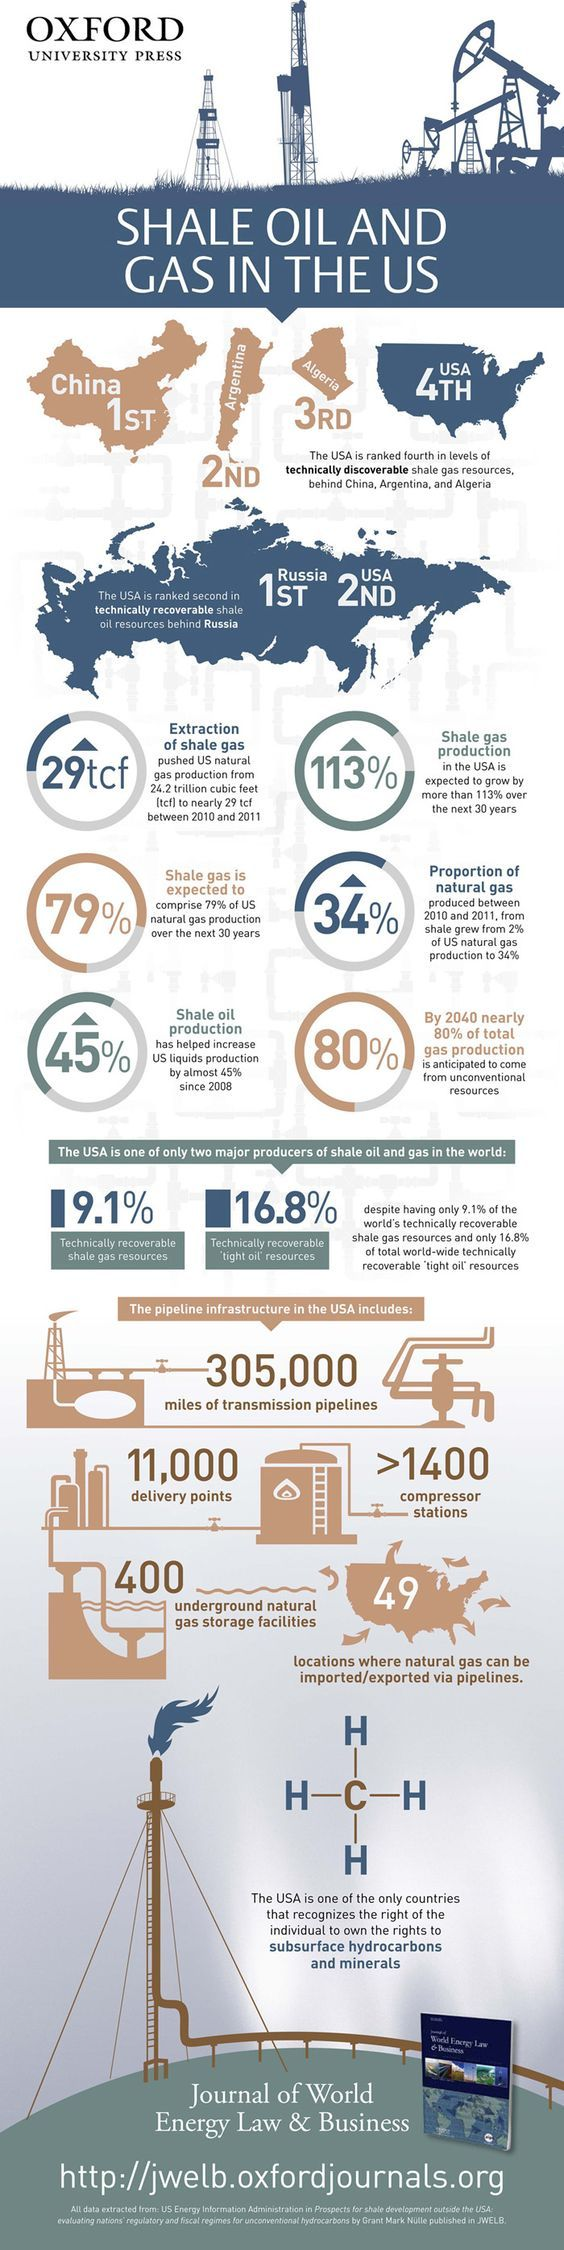 Did you know that the USA is ranked second in technically recoverable shale oil resources, right behind Russia? And shale gas production in the USA is expected to grow by more than 113% over the next 30 years. Find out more about shale in the US in our infographic.: